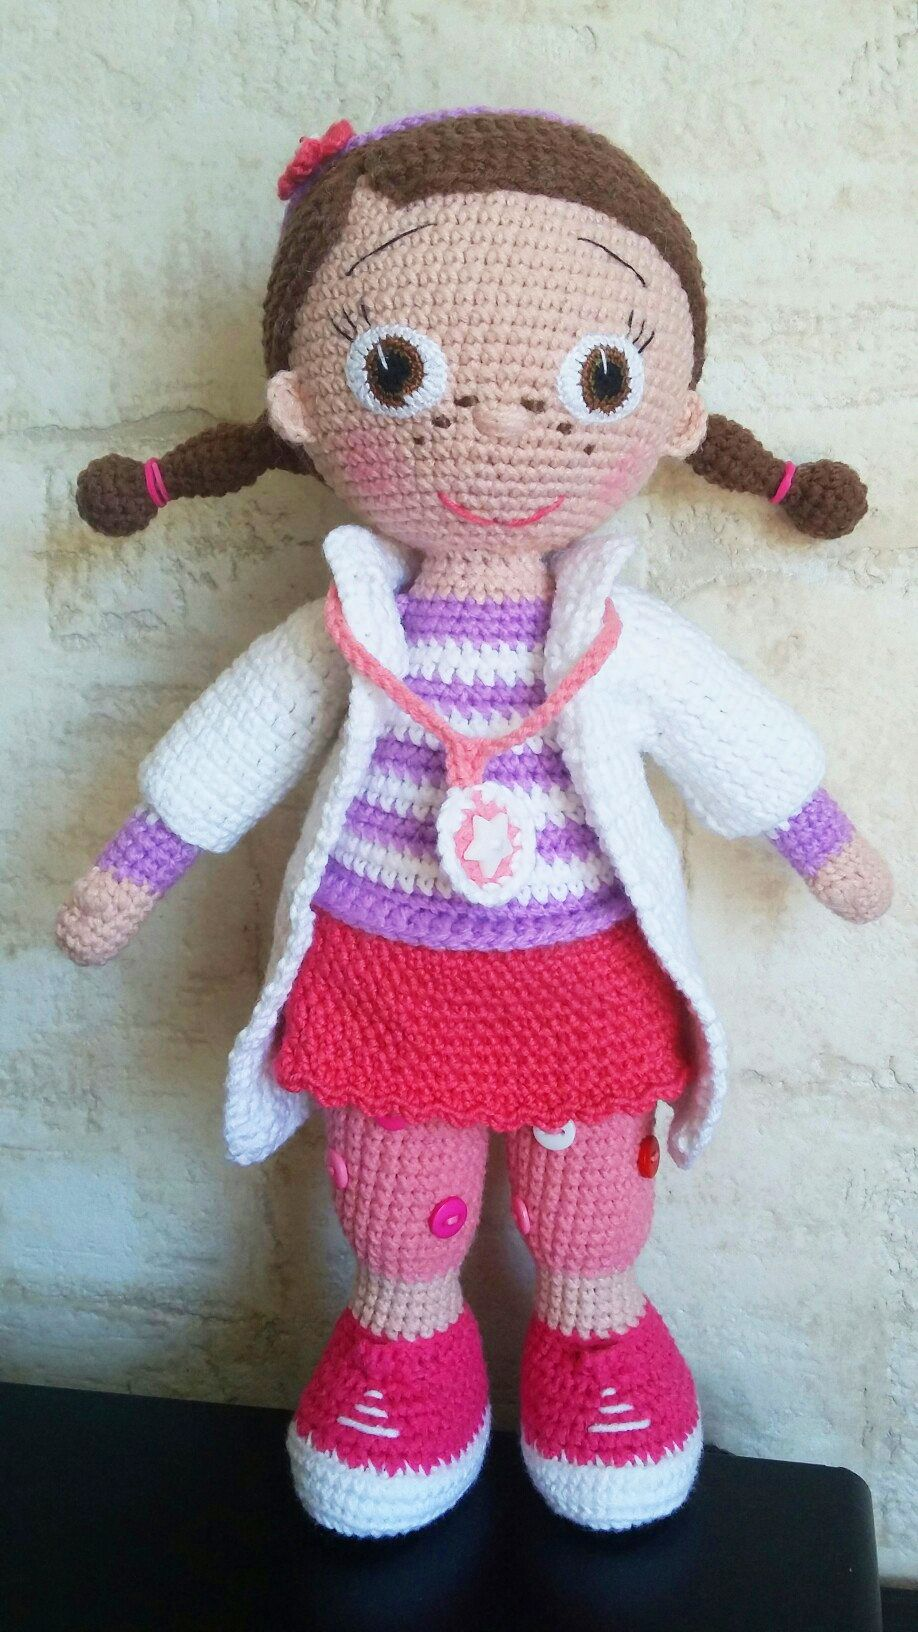 Amigurumi doctor crochet pattern free amigurumi patterns the doc mcstuffins doll crochet pattern is quite complicated but the result is worth it youll get a perfect amigurumi doll bankloansurffo Choice Image